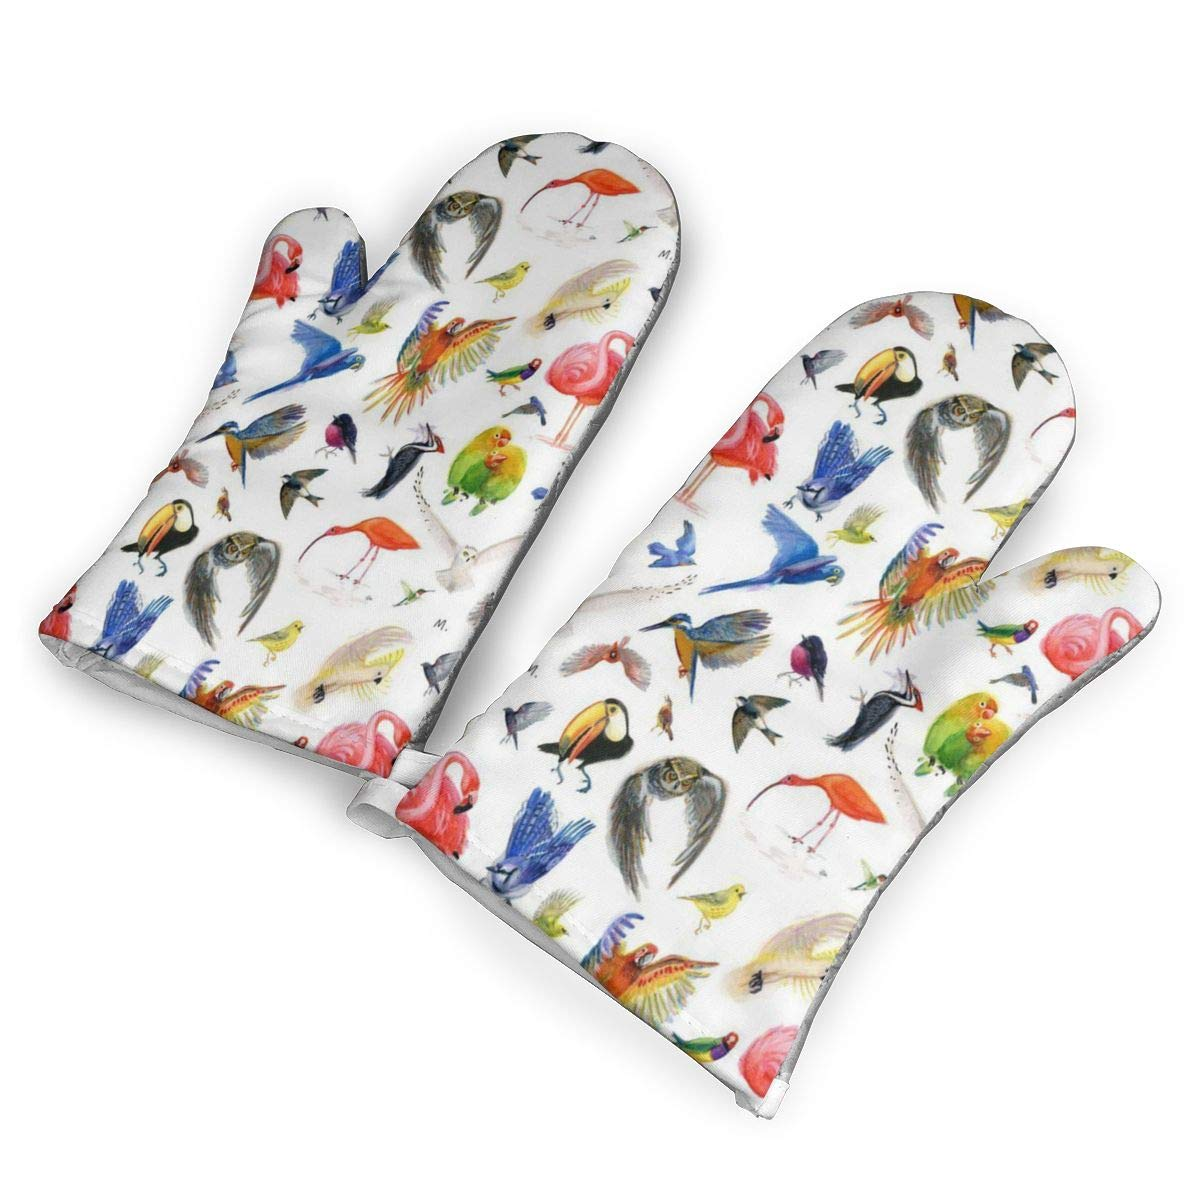 QOQD Rainbow Birds Oven Mitts with Polyester Fabric Printed Pattern,1 Pair of Heat Resistant Oven Gloves for Cooking,Grilling,Barbecue Potholders